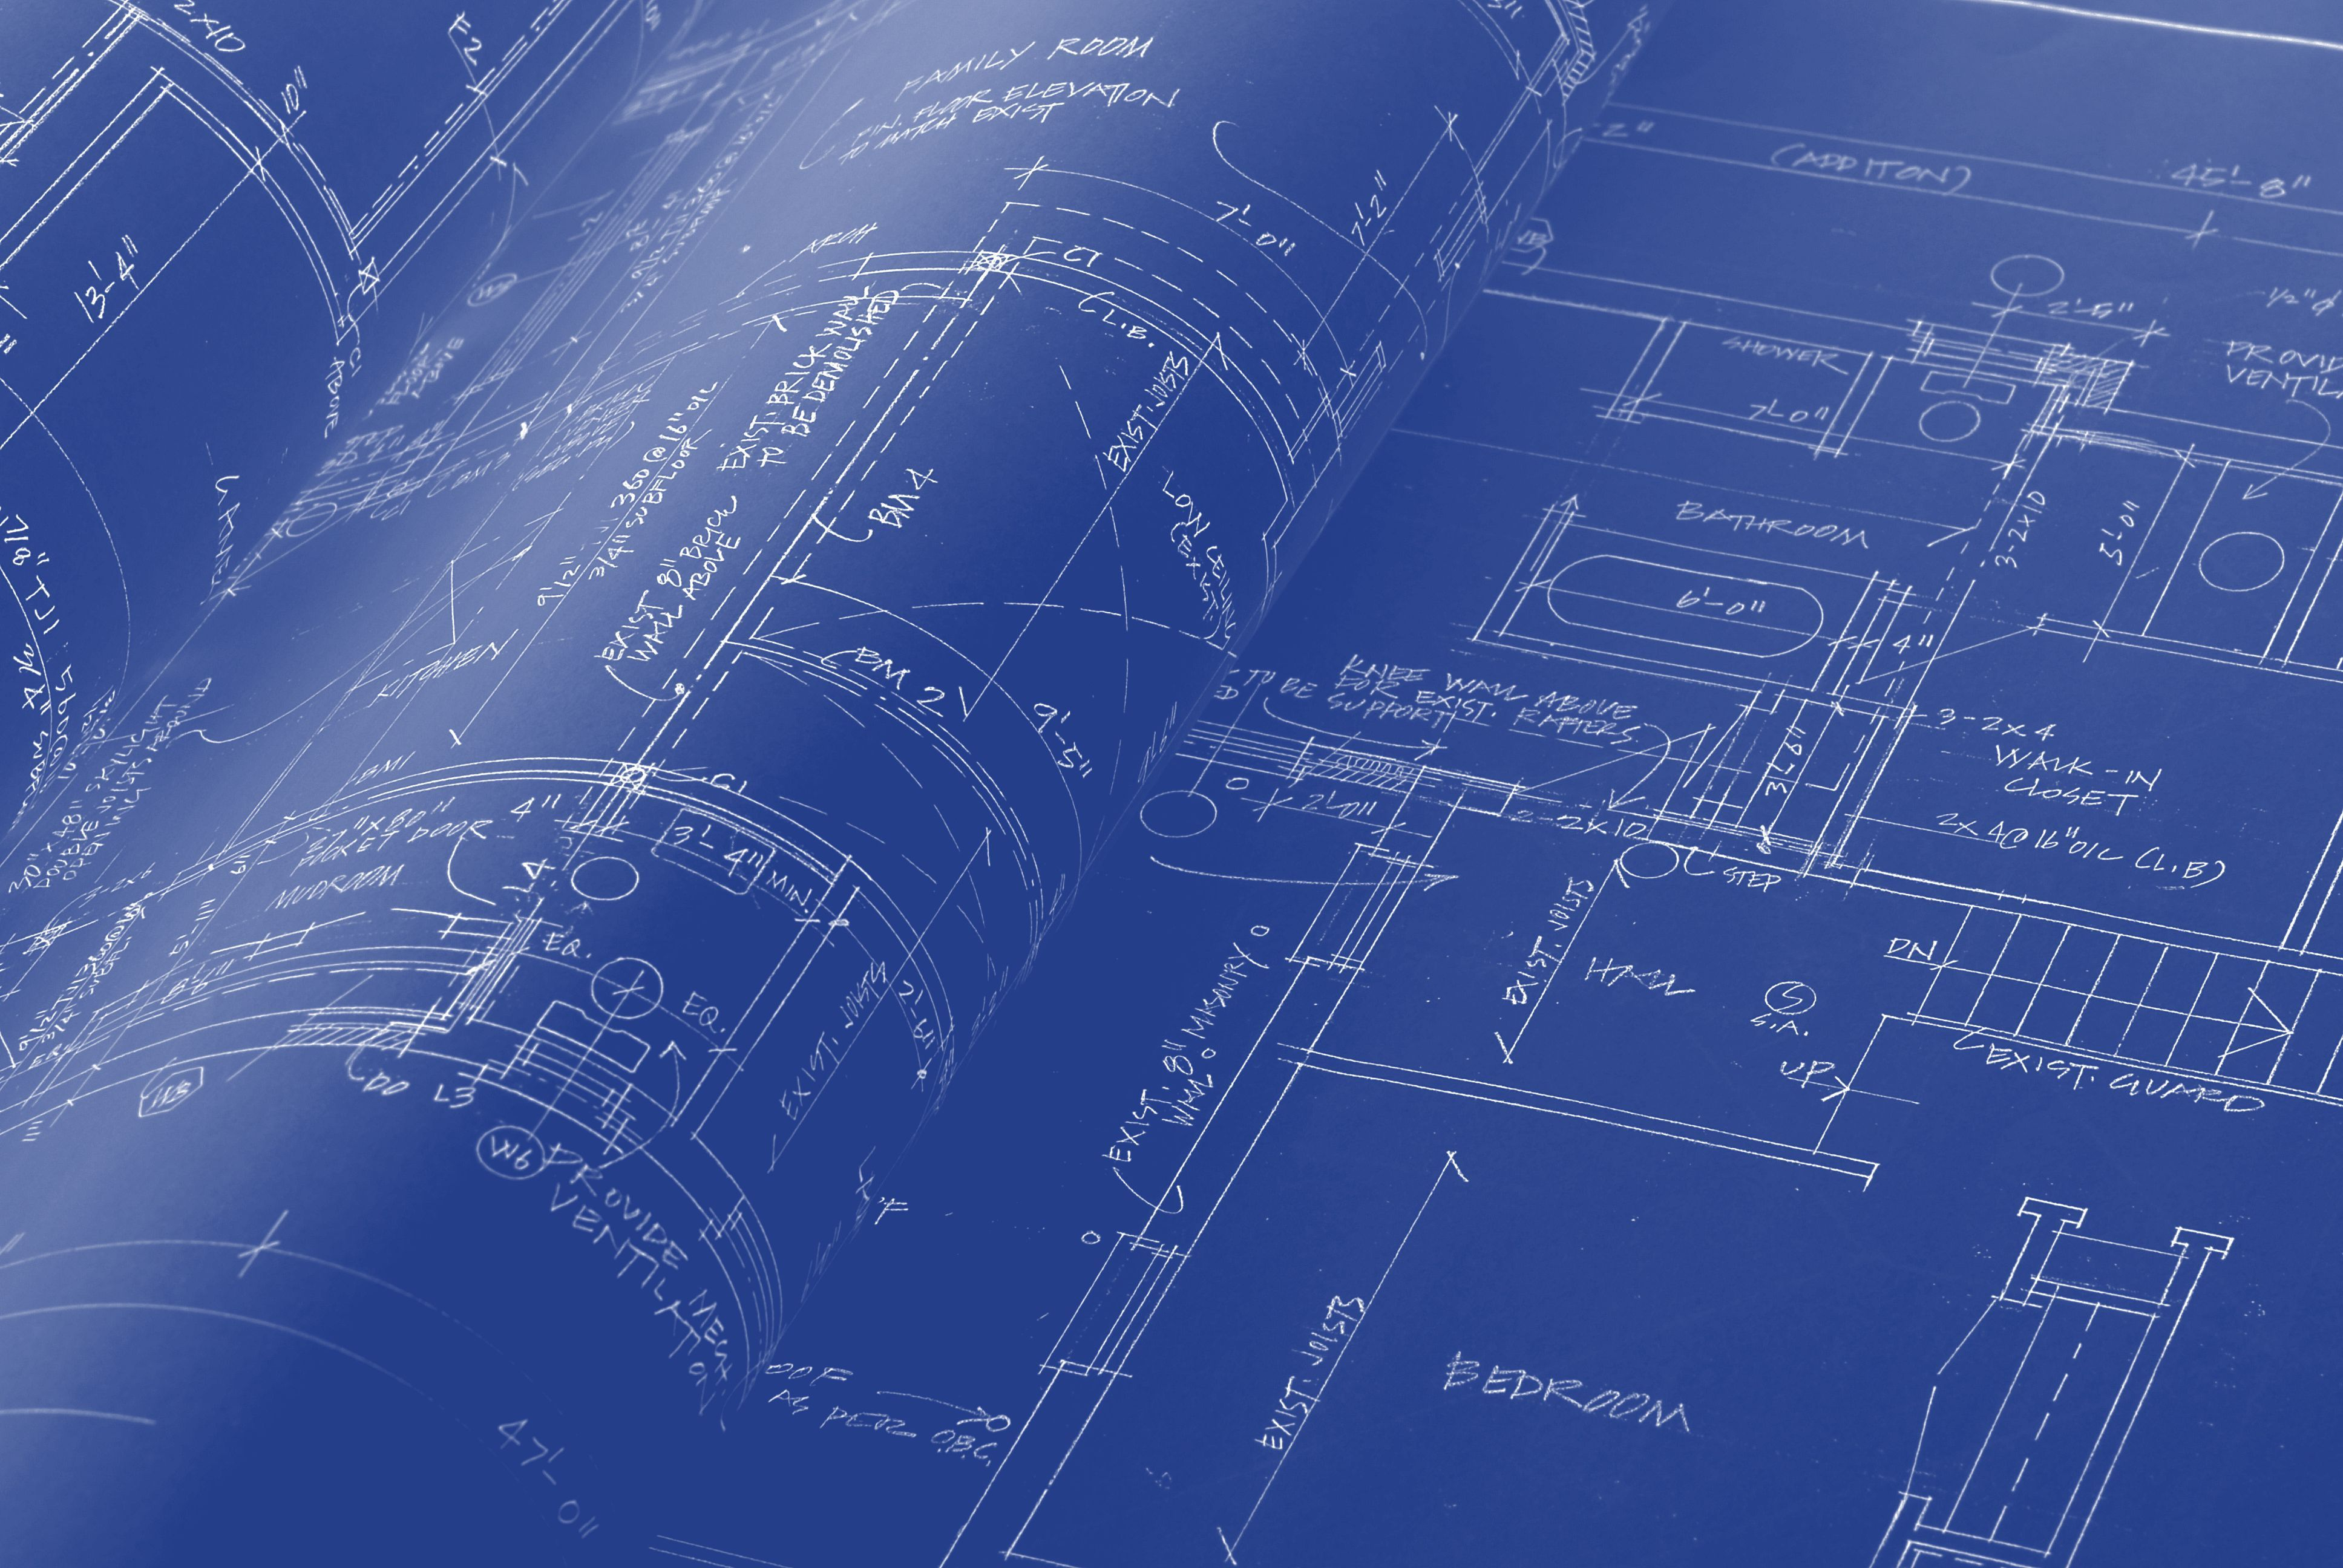 How to make blueprint paper blueprints were one of the first ways to make copies of plans or drawings heres how to make blueprint paper yourself malvernweather Choice Image